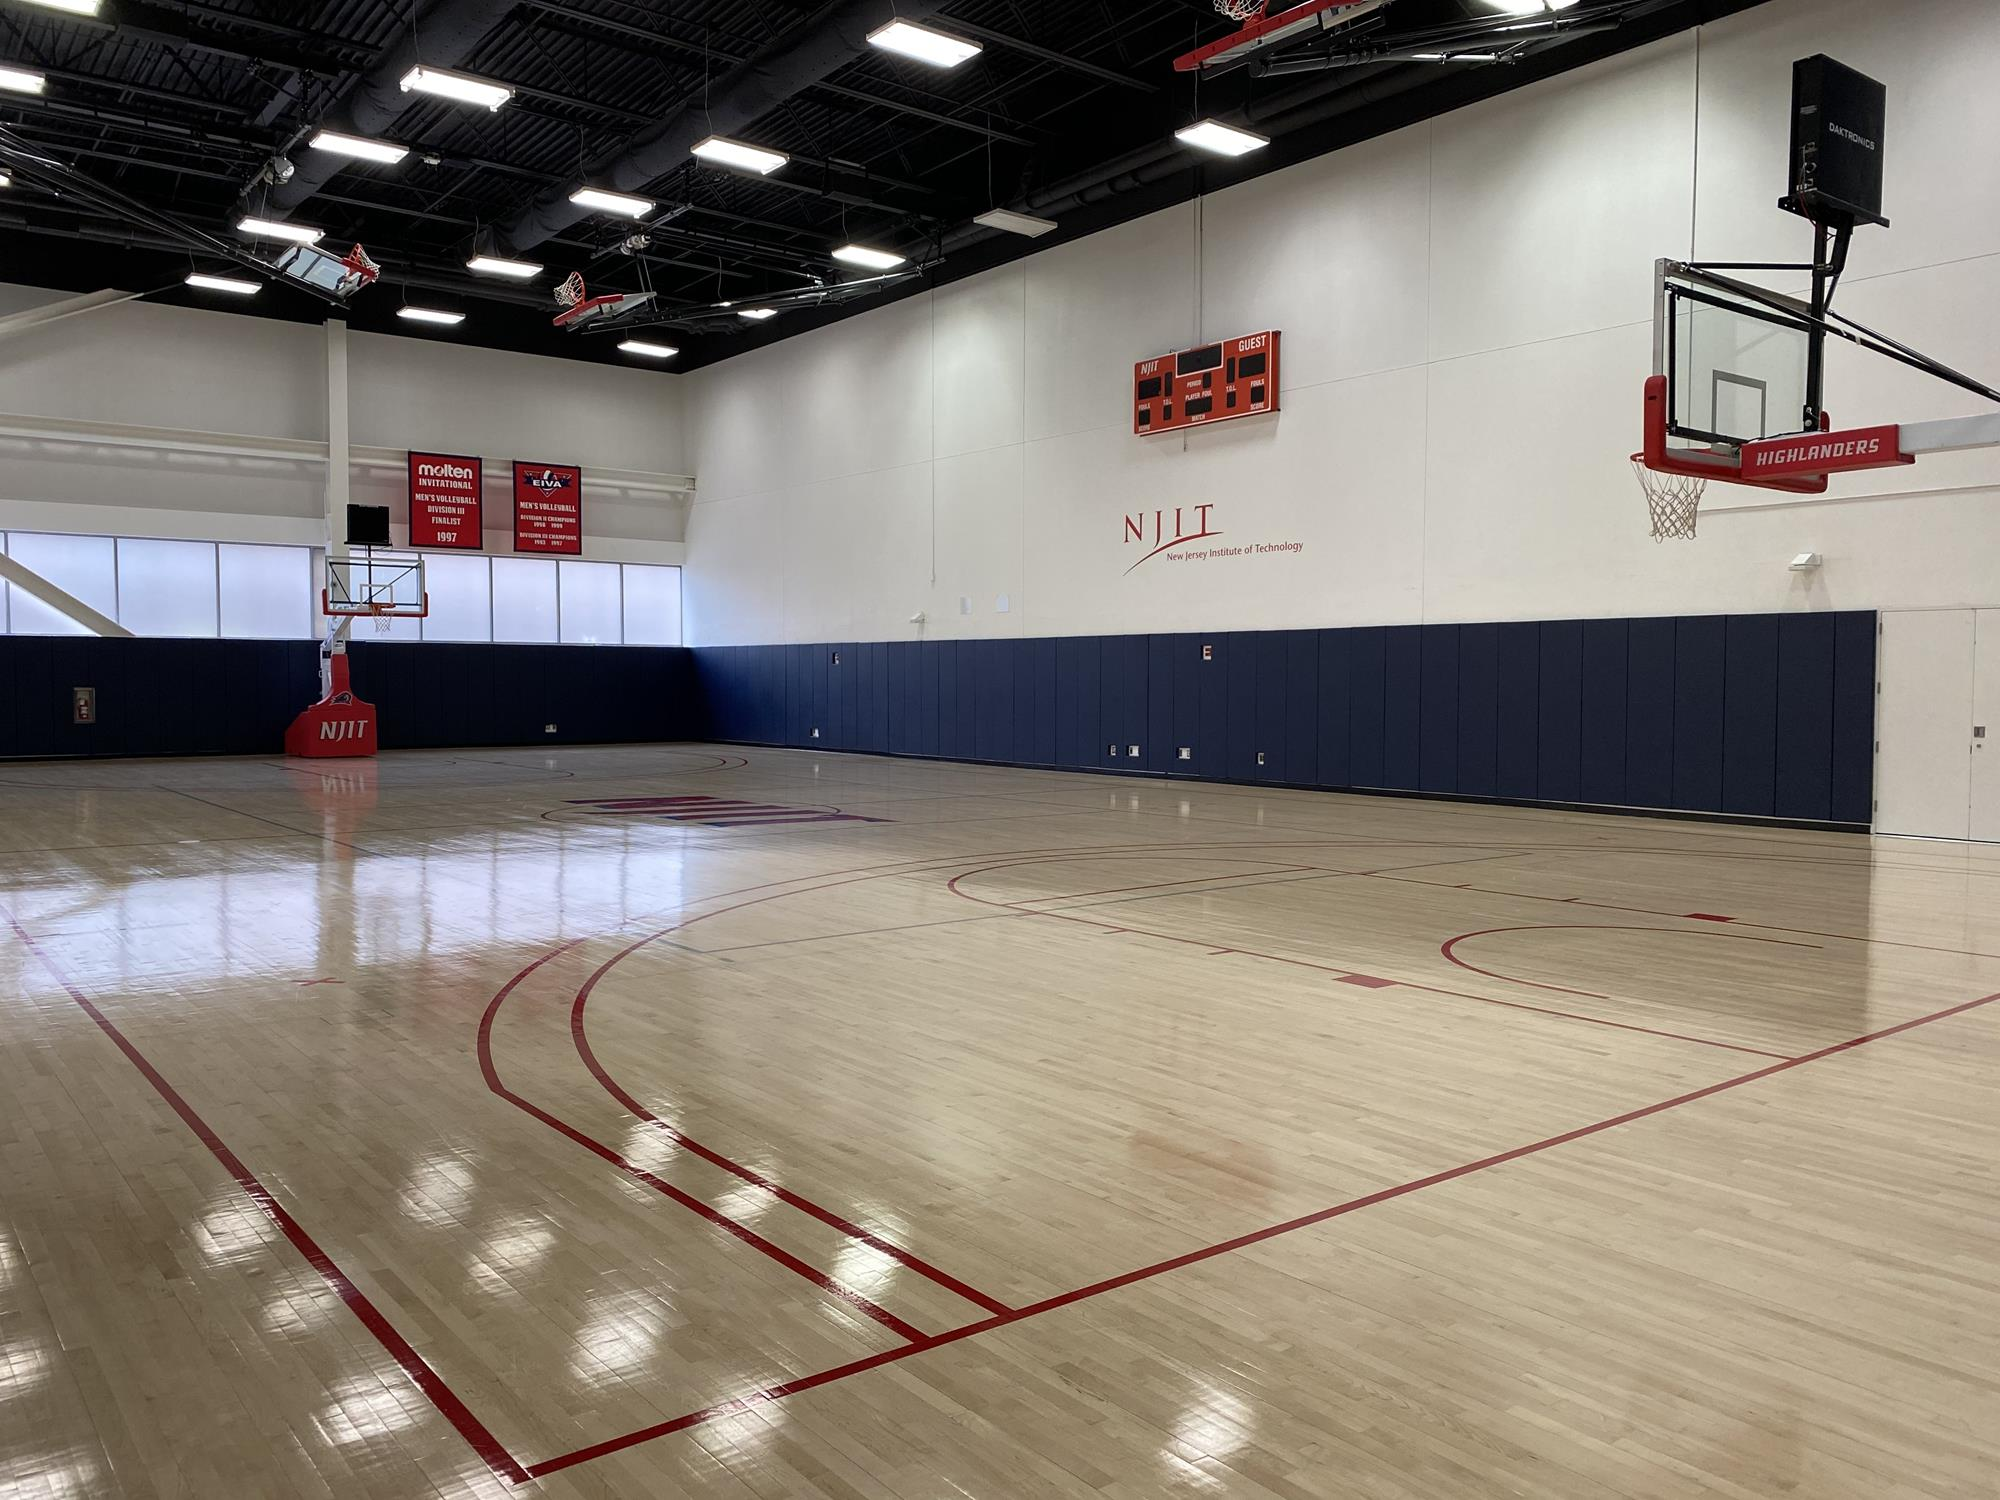 Njit Wellness And Events Center Facilities New Jersey Institute Of Technology Athletics